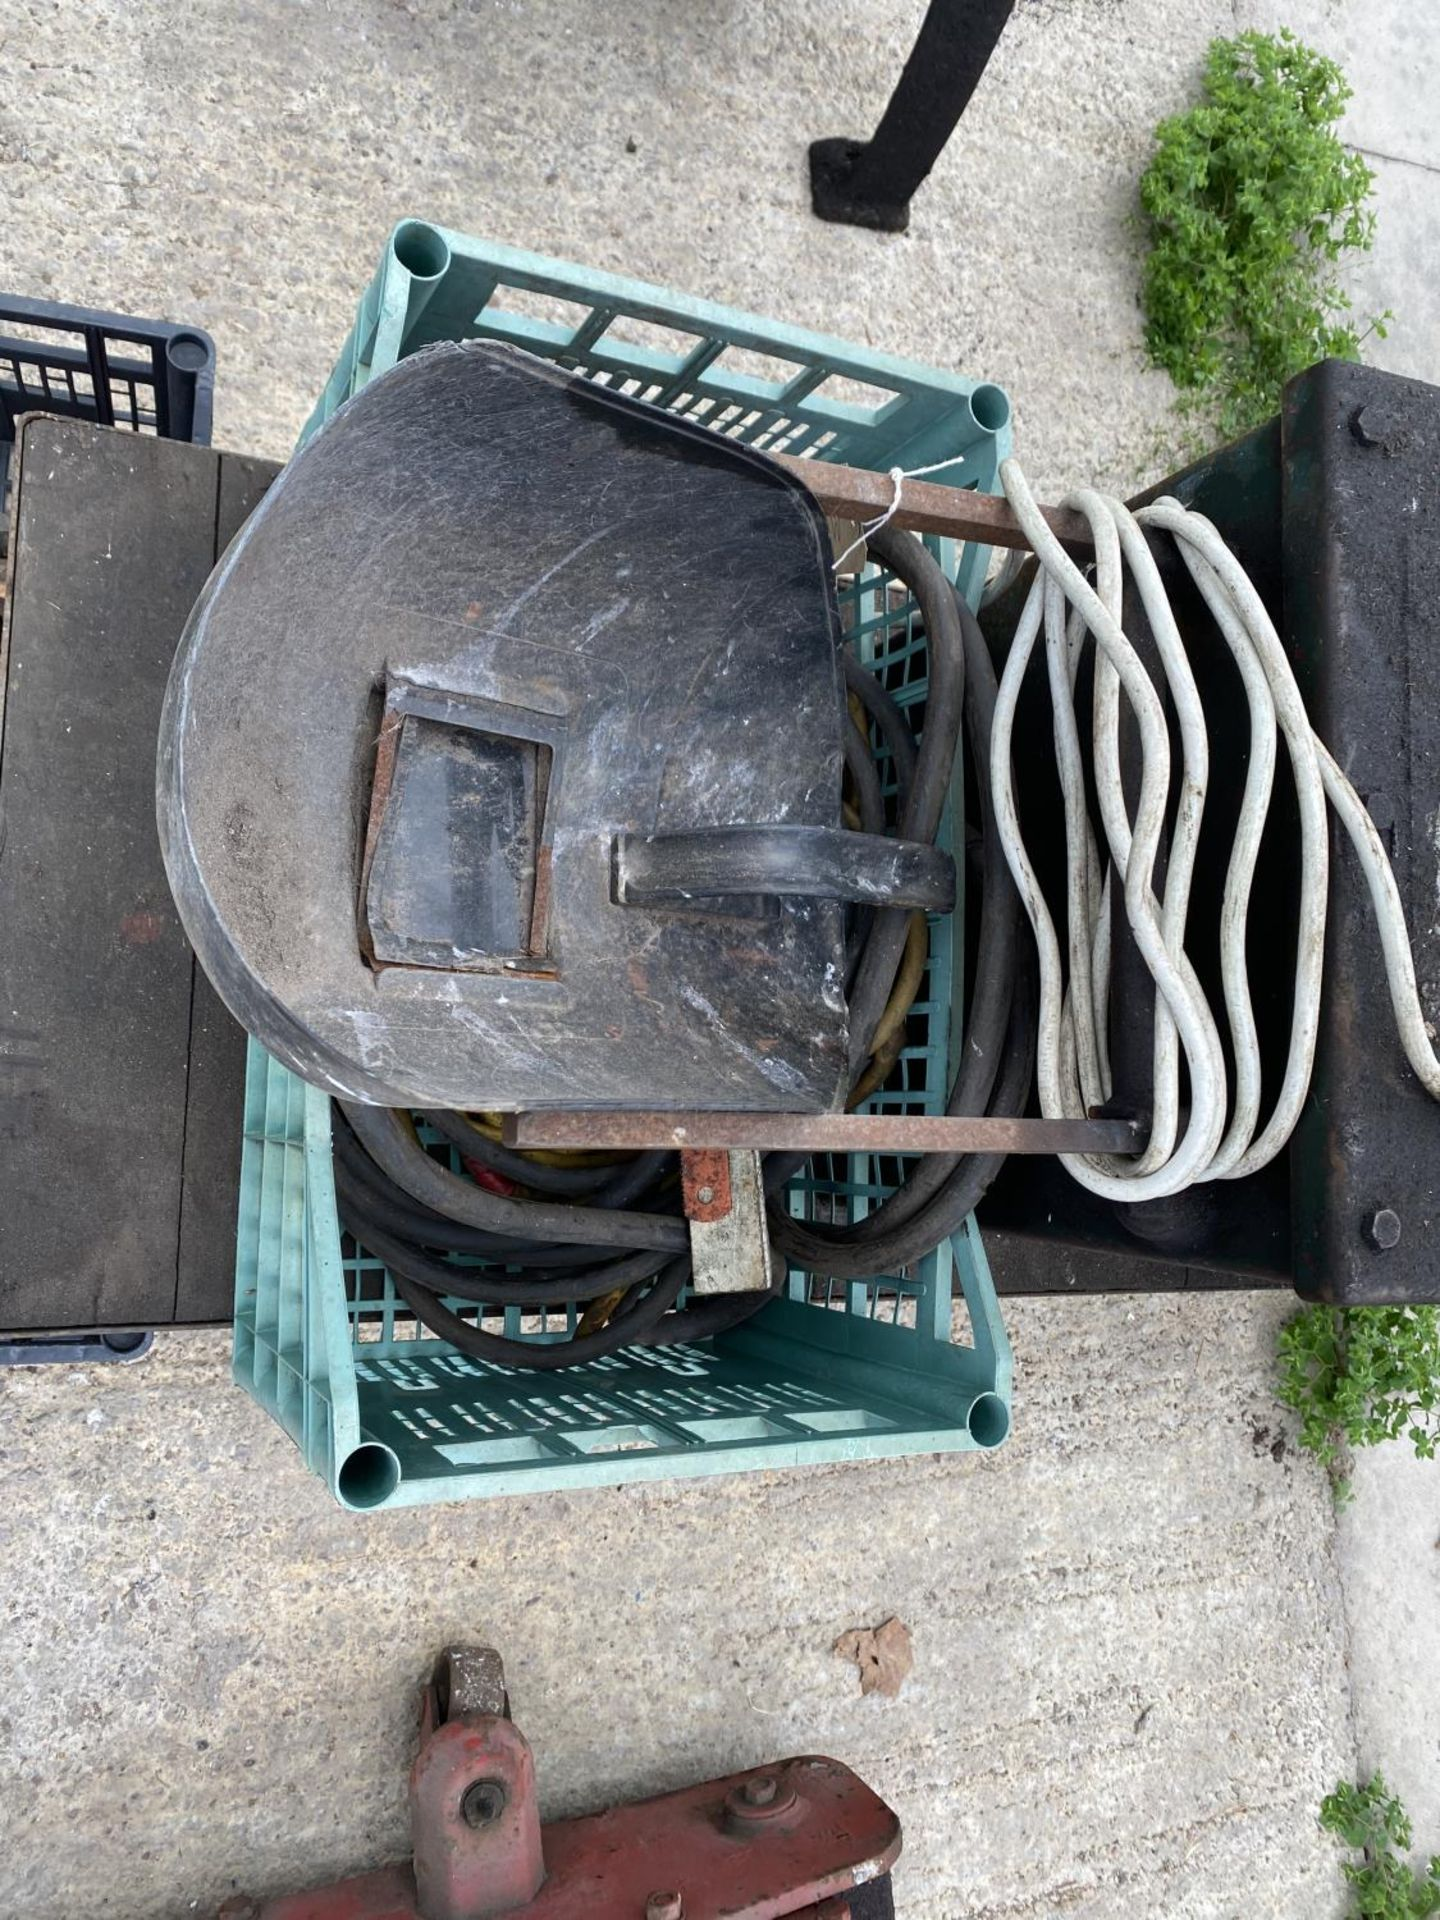 A MIG WELDER ON A TROLLEY BASE TO INCLUDE WELDER ACCESSORIES WORKING WHEN LAST USED+ VAT - Image 3 of 5